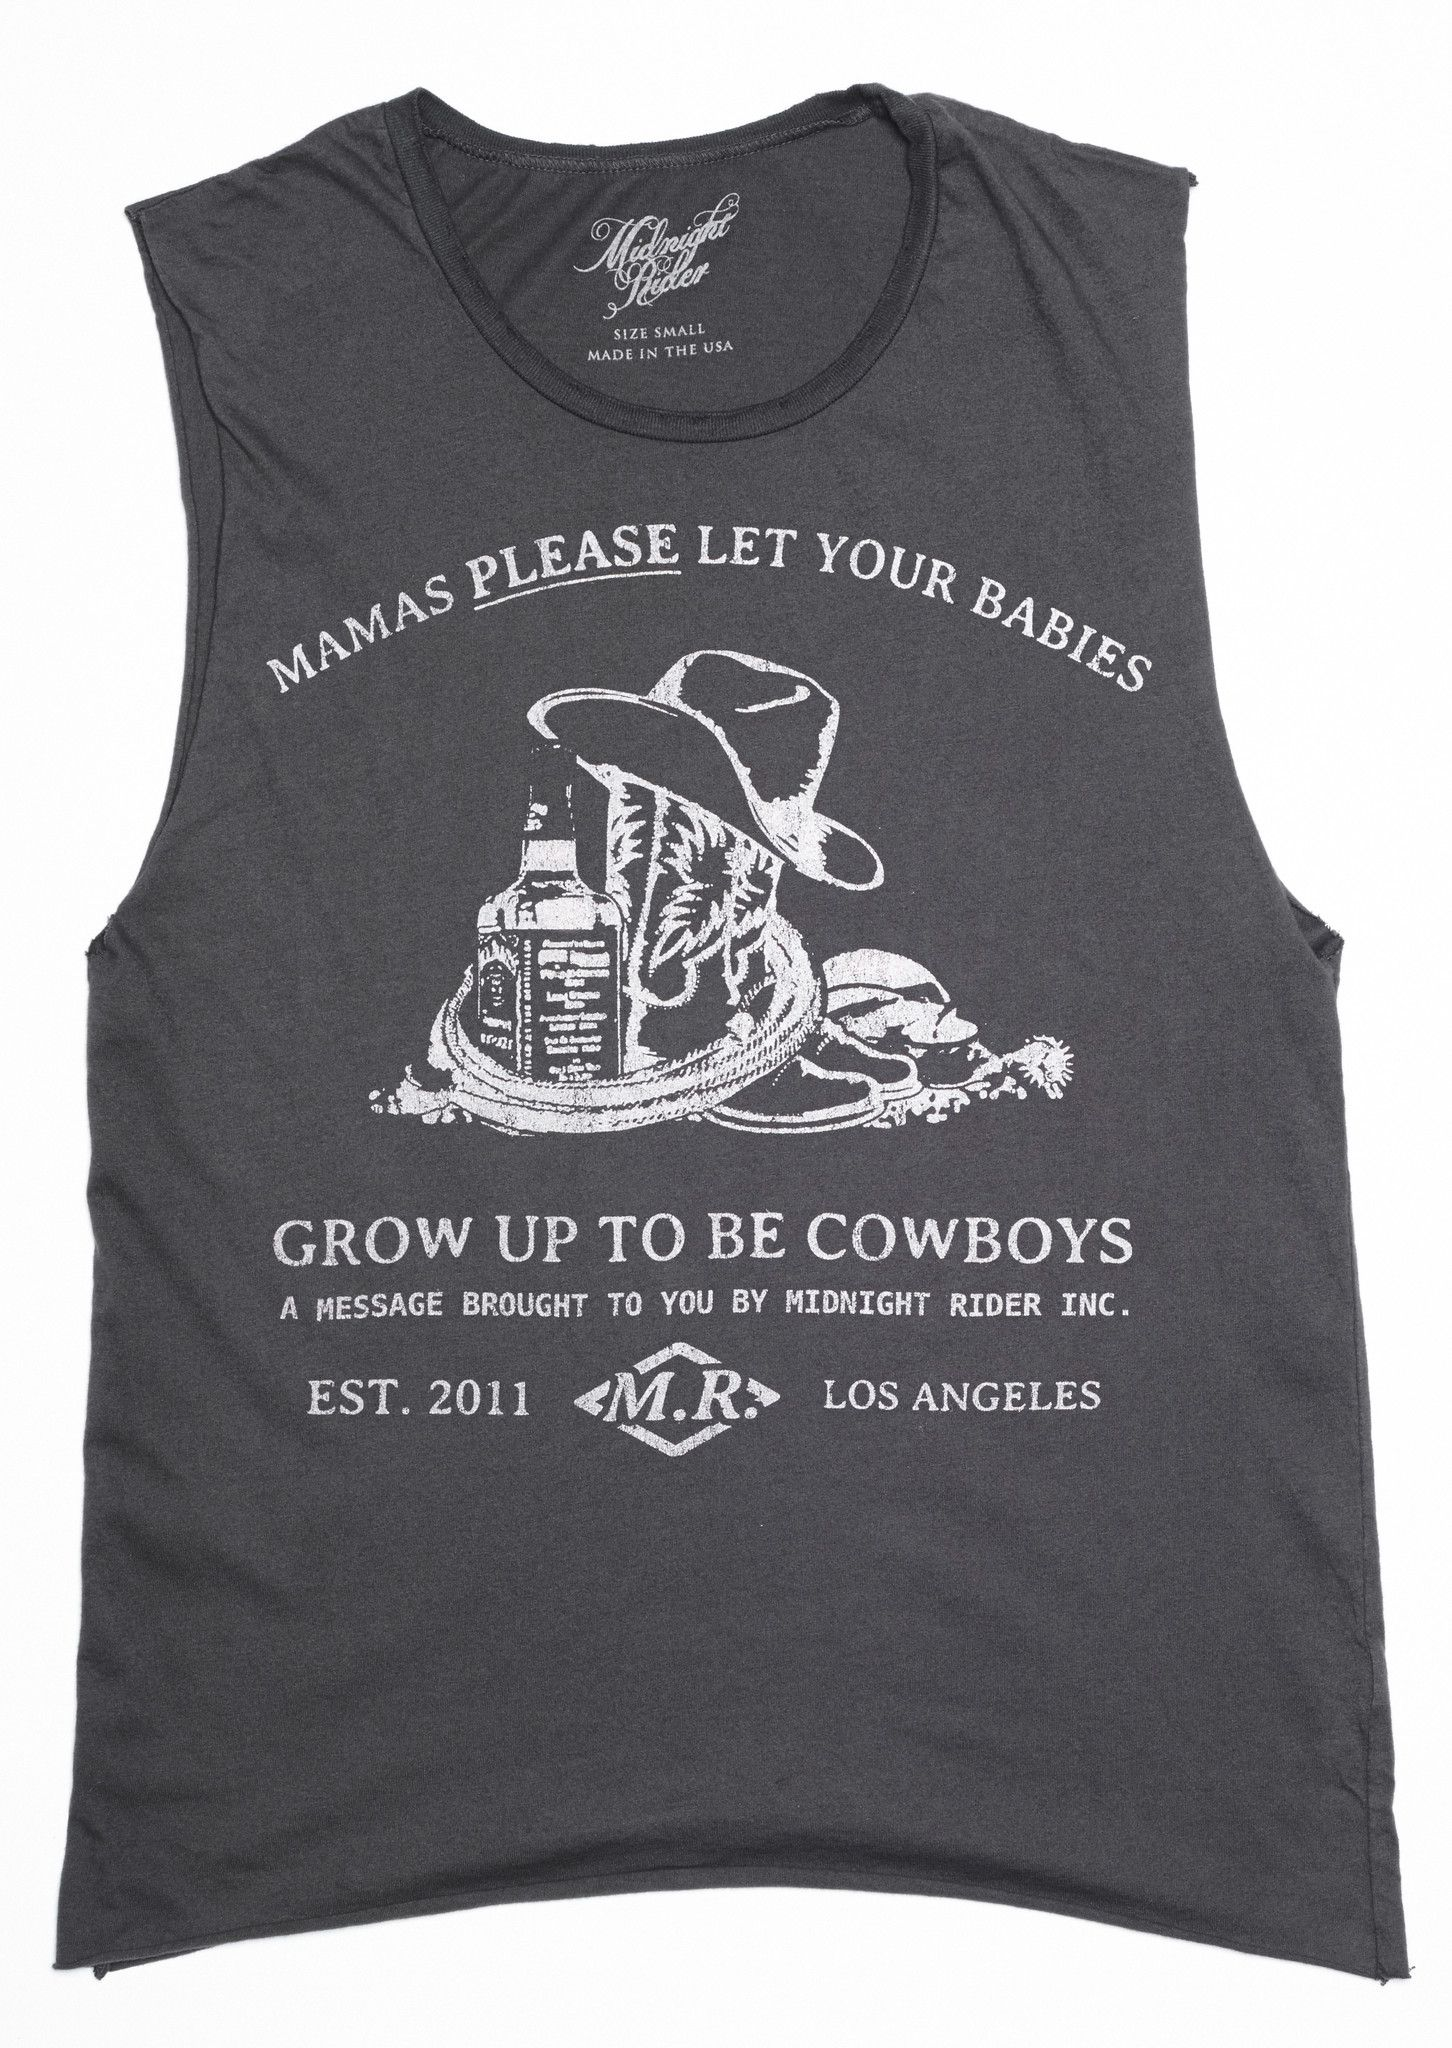 0e49f4f4 Please Let Your Babies Grow Up To Be Cowboys Muscle Tee - Vintage Black